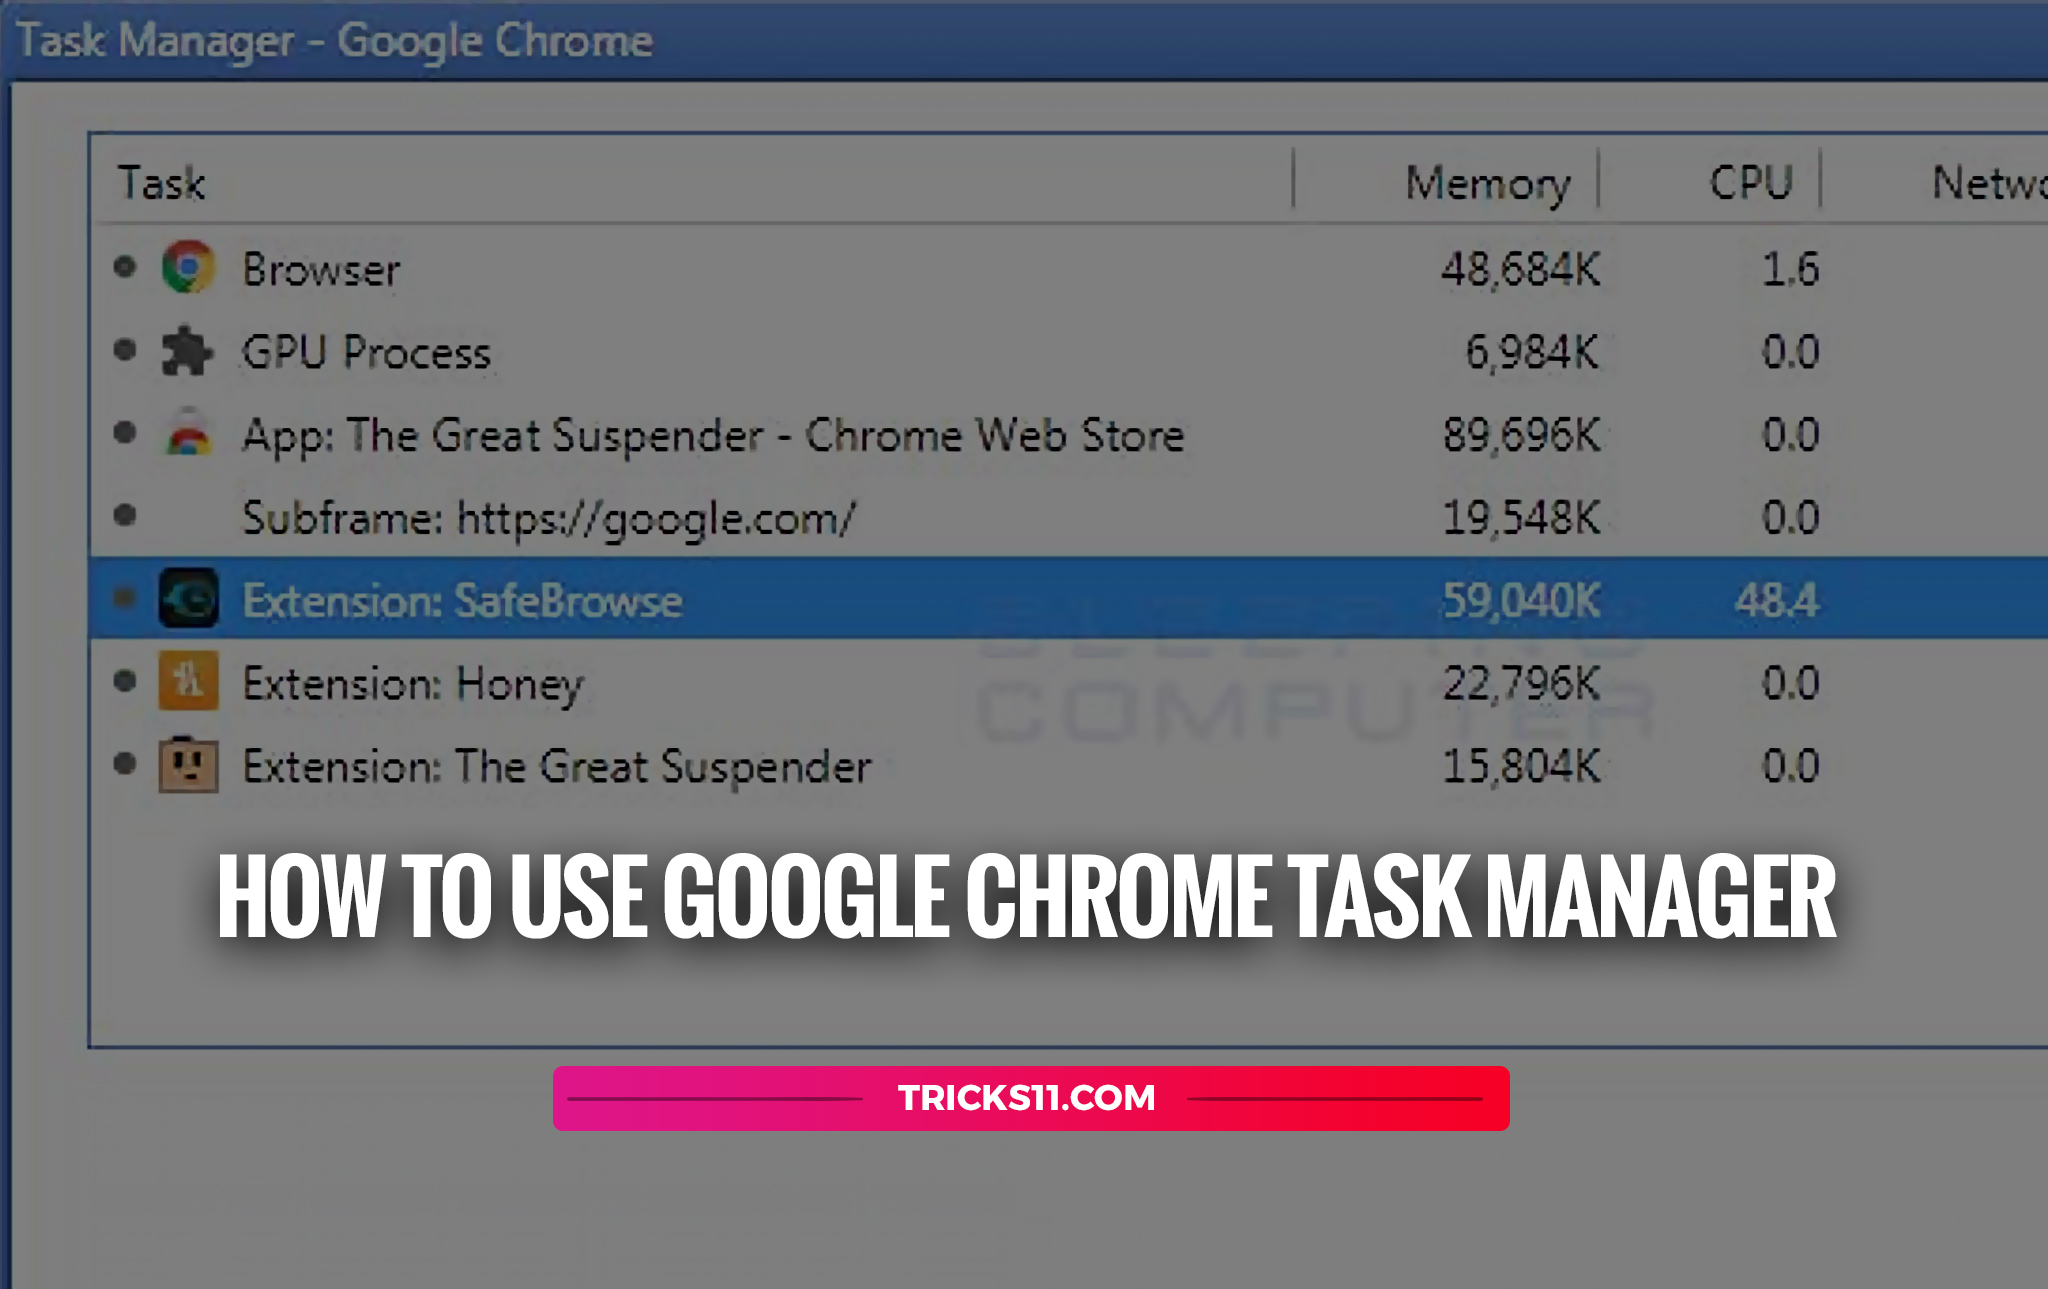 How To Use Google Chrome Task Manager